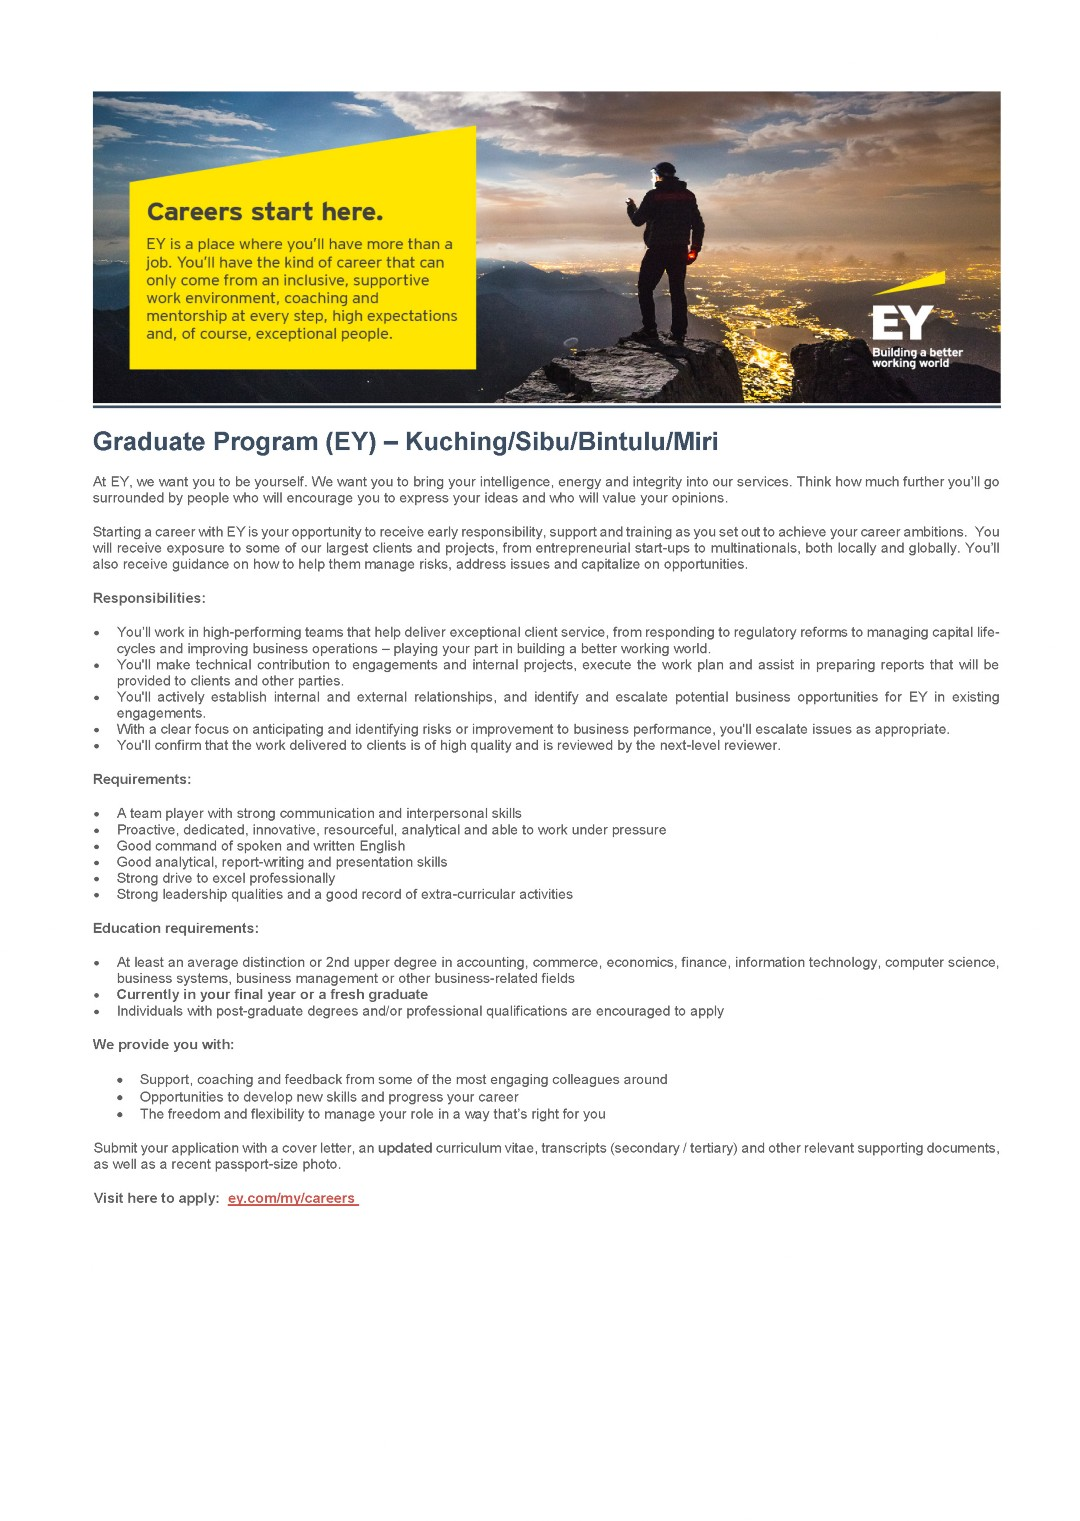 Job Description - EY (Graduate Program)June 2018